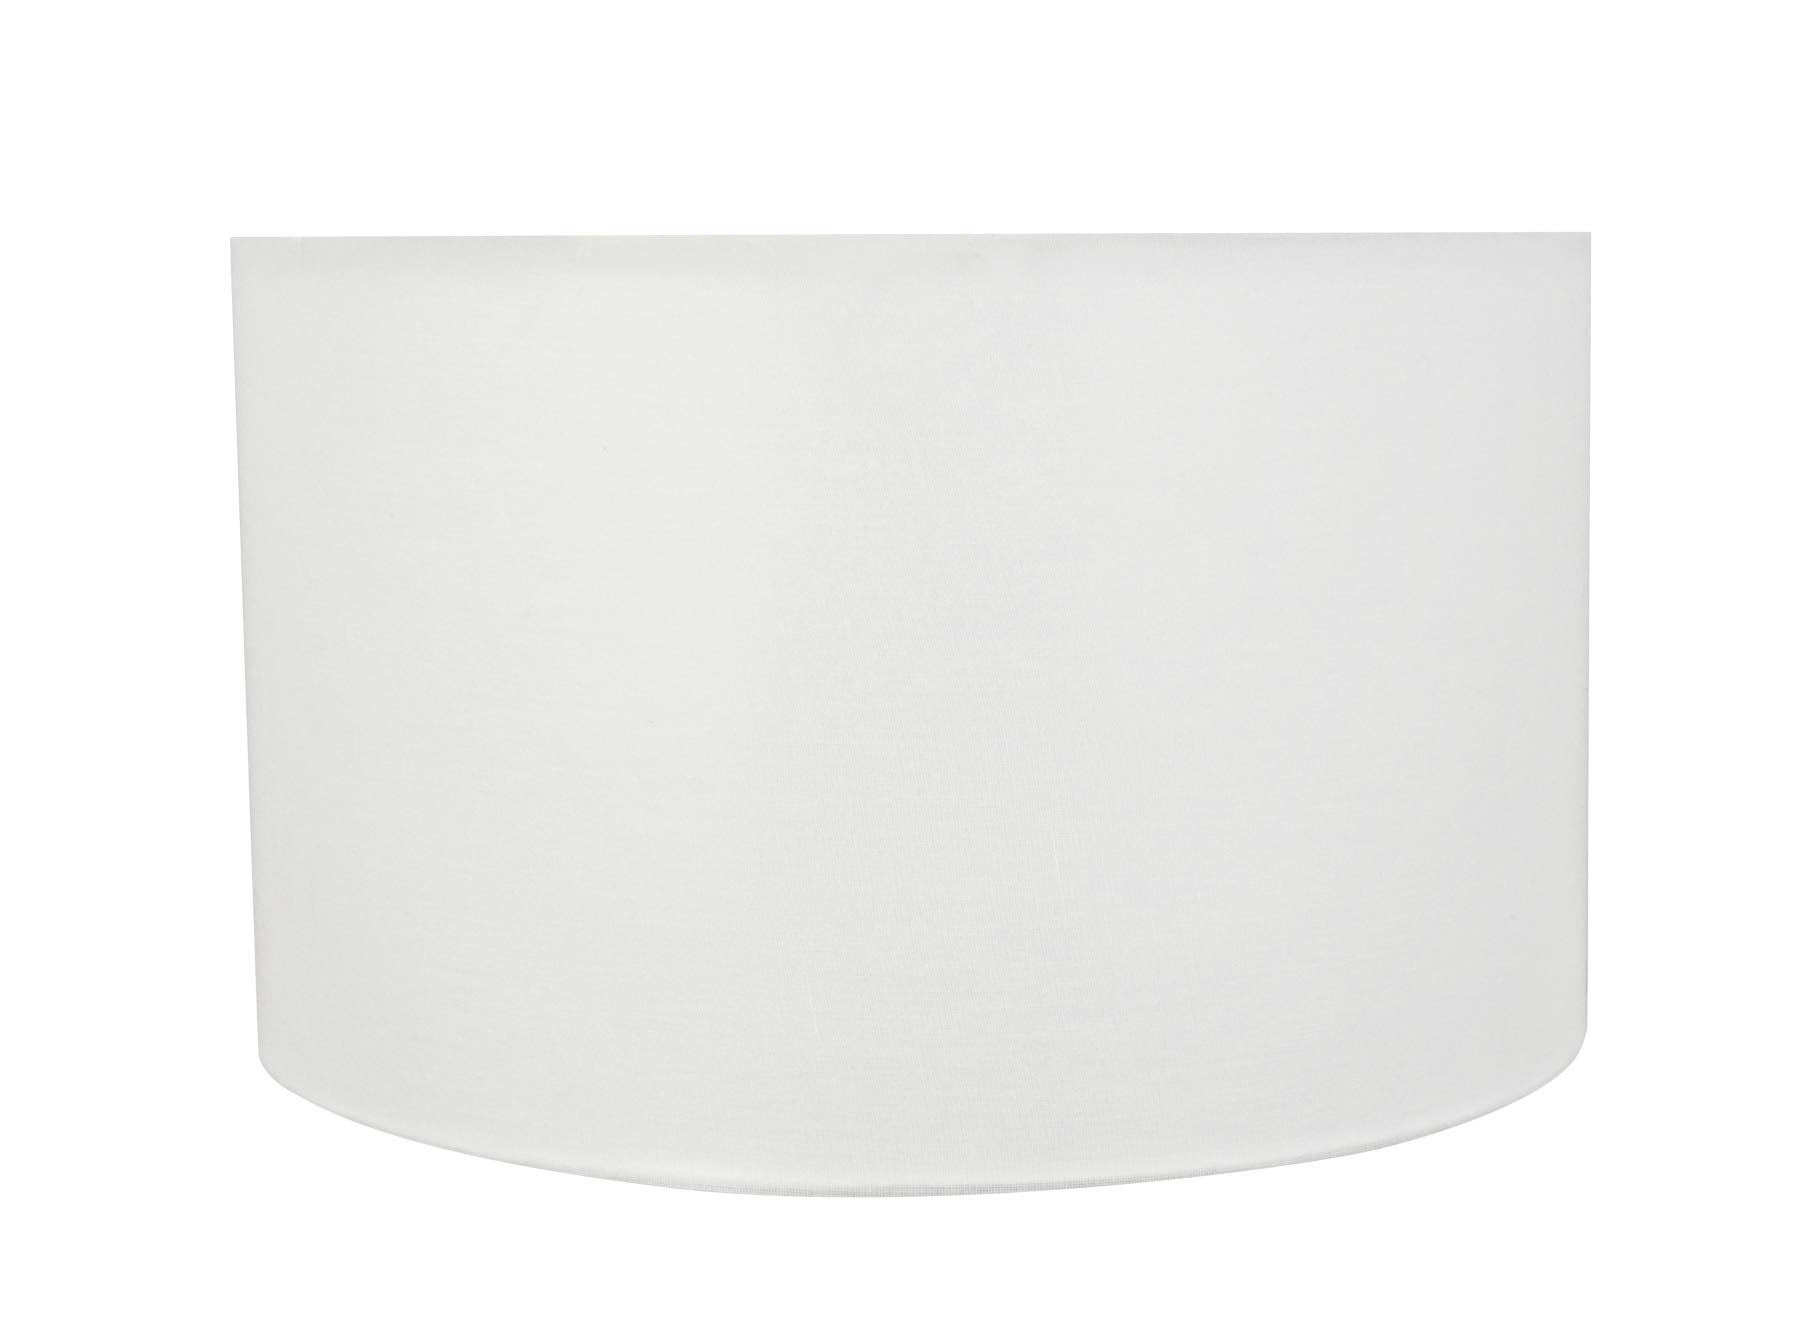 Aspen Creative 58326 Transitional Drum (Cylinder) Shape Construction White, 17'' Wide (17'' x 17'' x 10'') UNO LAMP Shade Off-